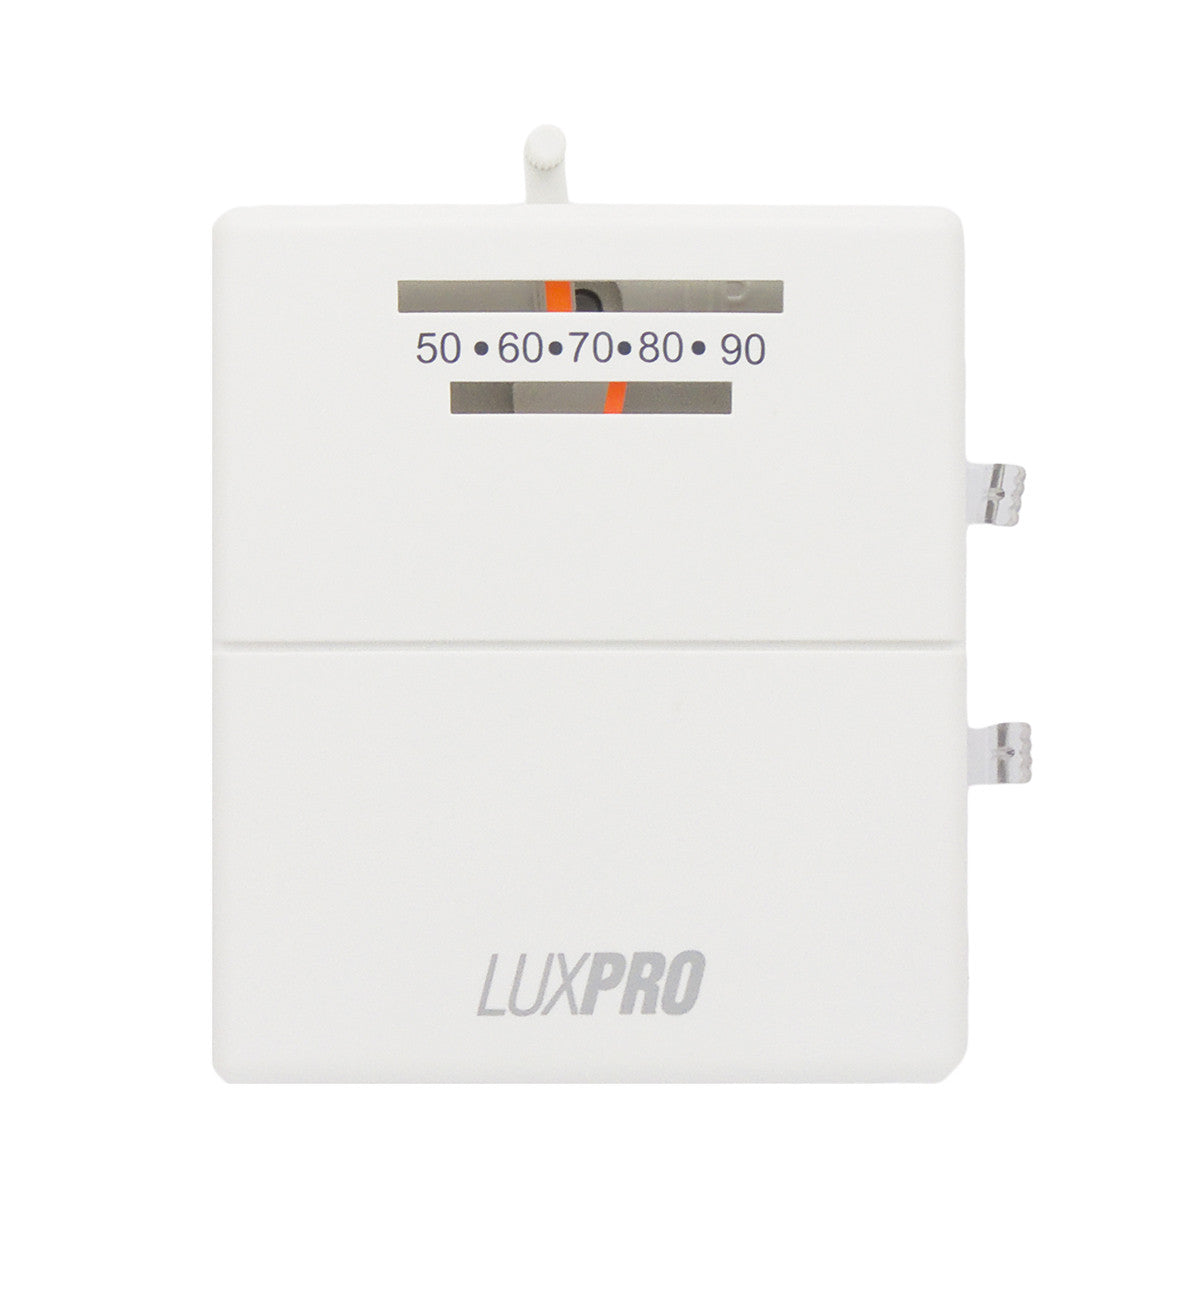 Luxpro Thermostat Wiring Heat Gas Data Diagrams 2 Wires Only Psm40sa Mechanical Snap Action Wire Rh Ambientfloorheat Com 2wire